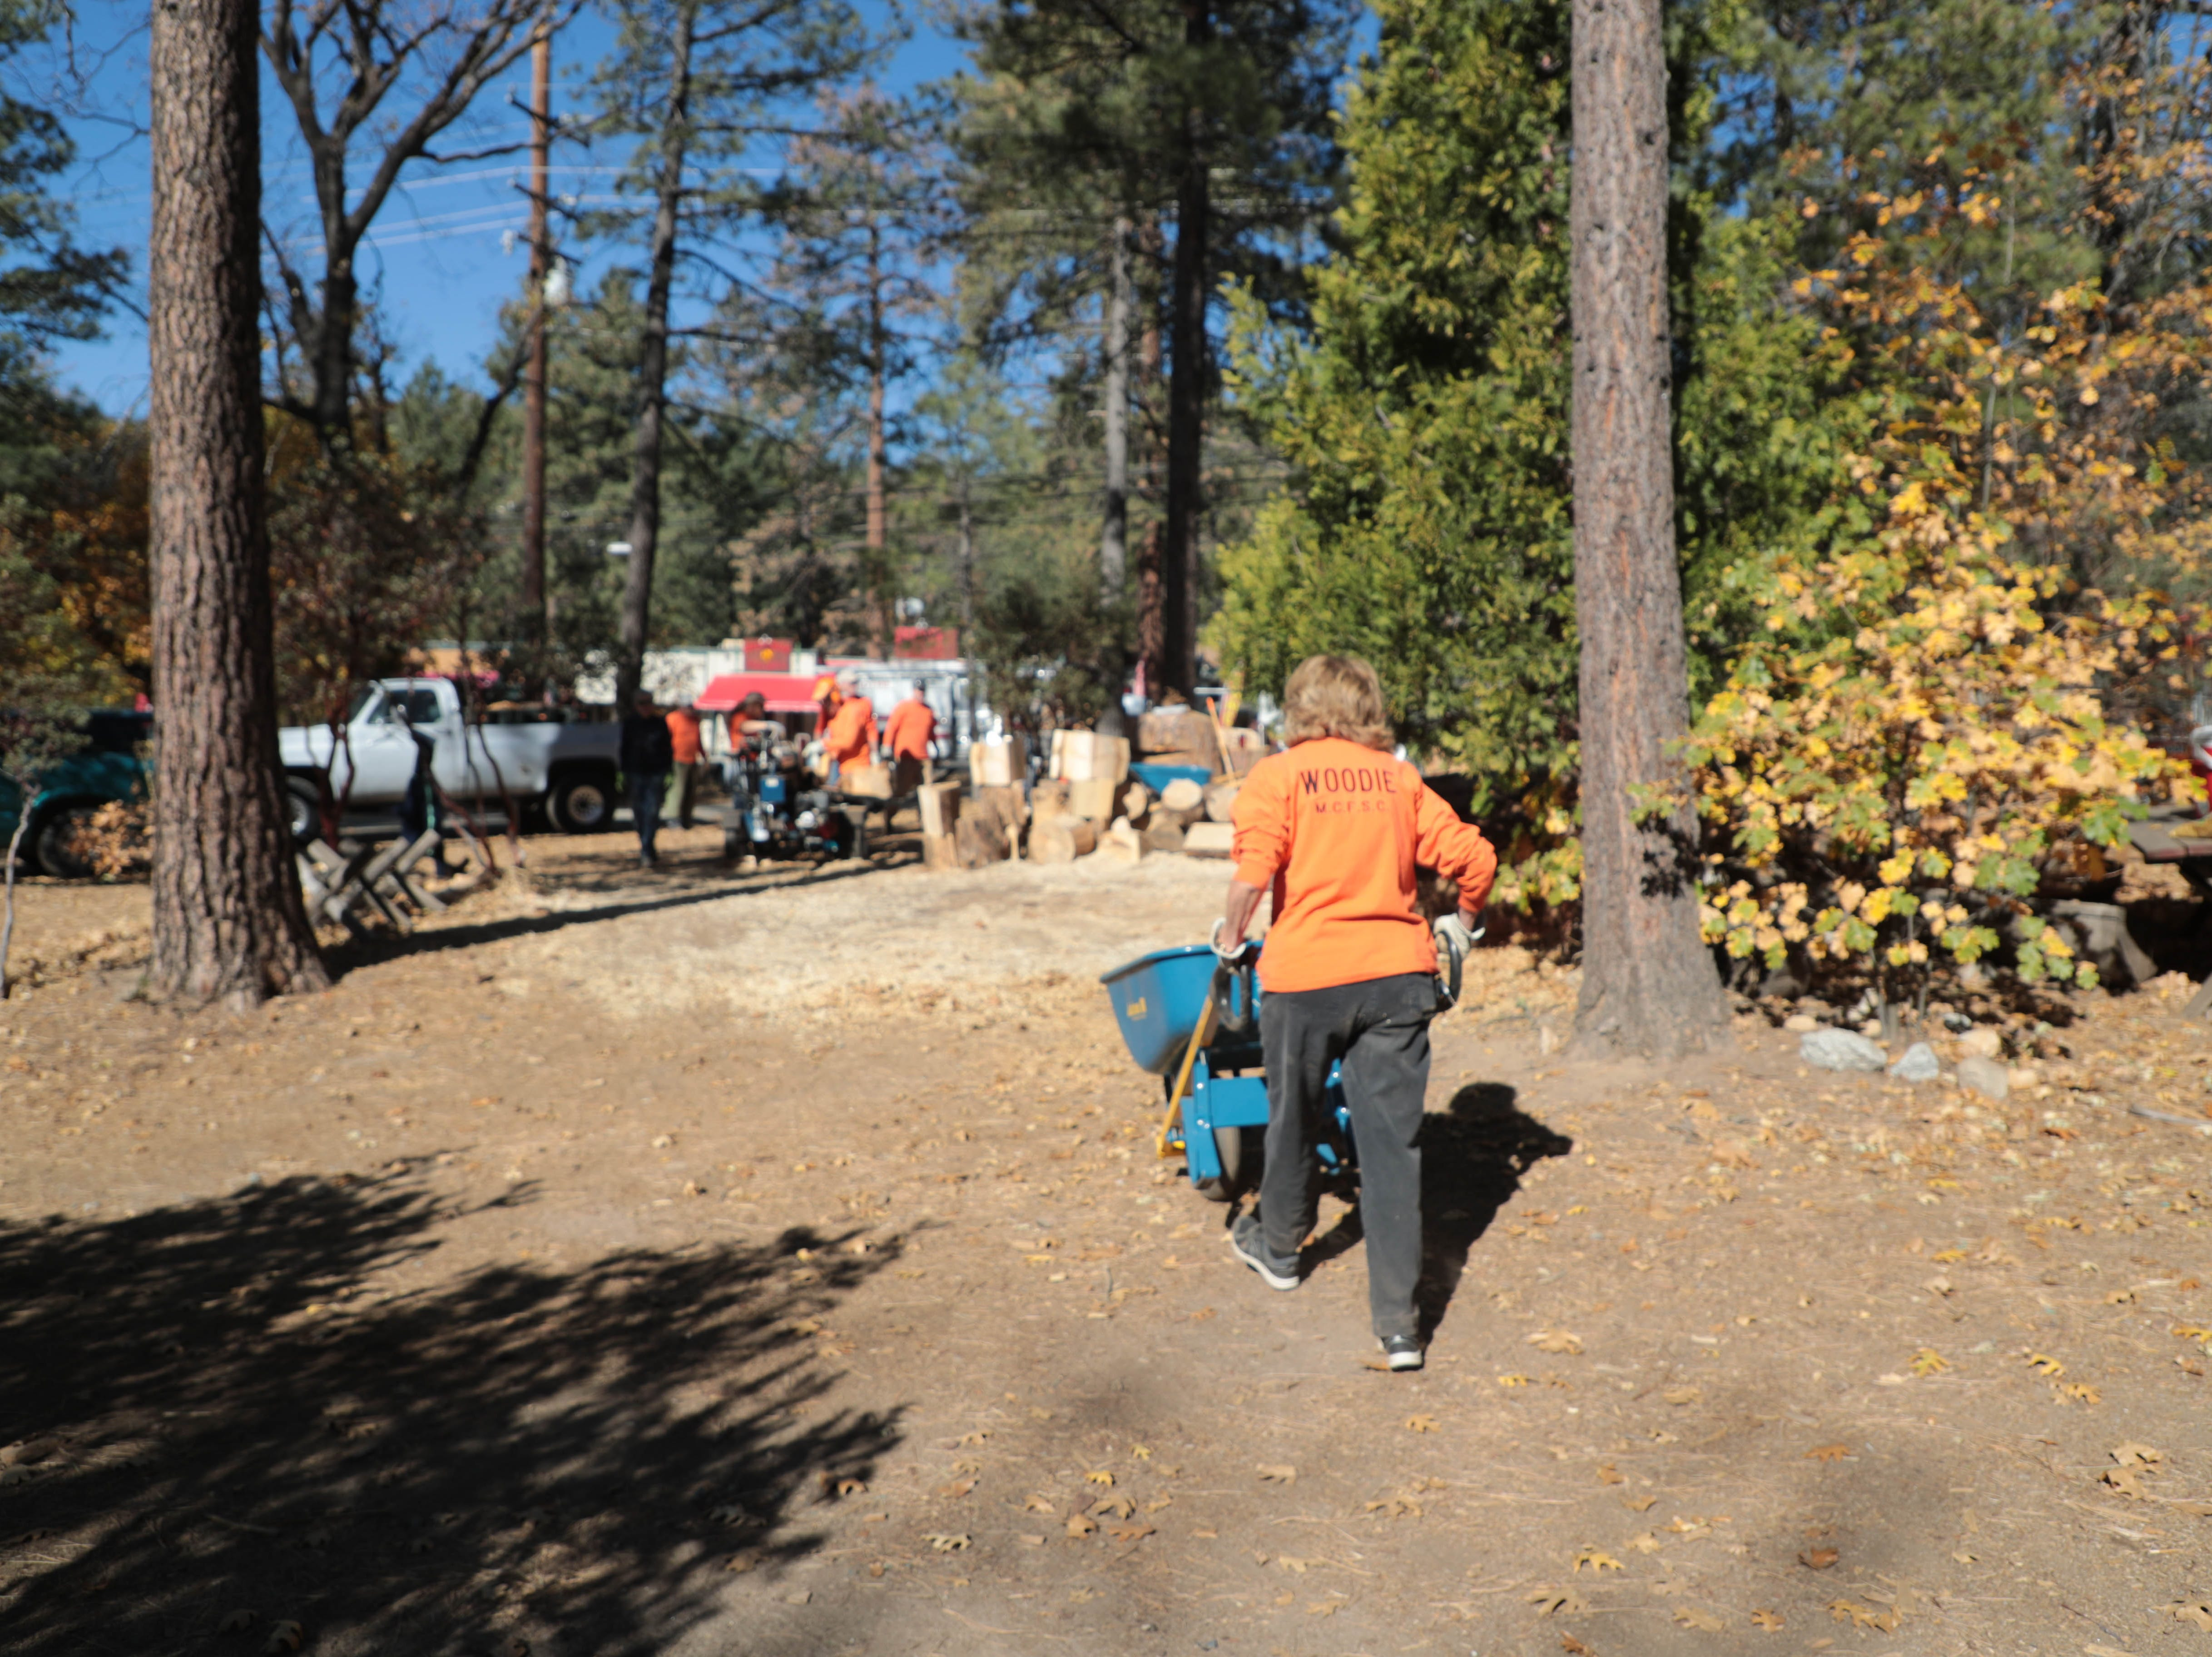 The Woodies, a group of seniors in Idyllwild, cut dead trees to make firewood on Friday, November 9, 2018. They Woodies are part of the Mountain Communities Fire Safe Council.